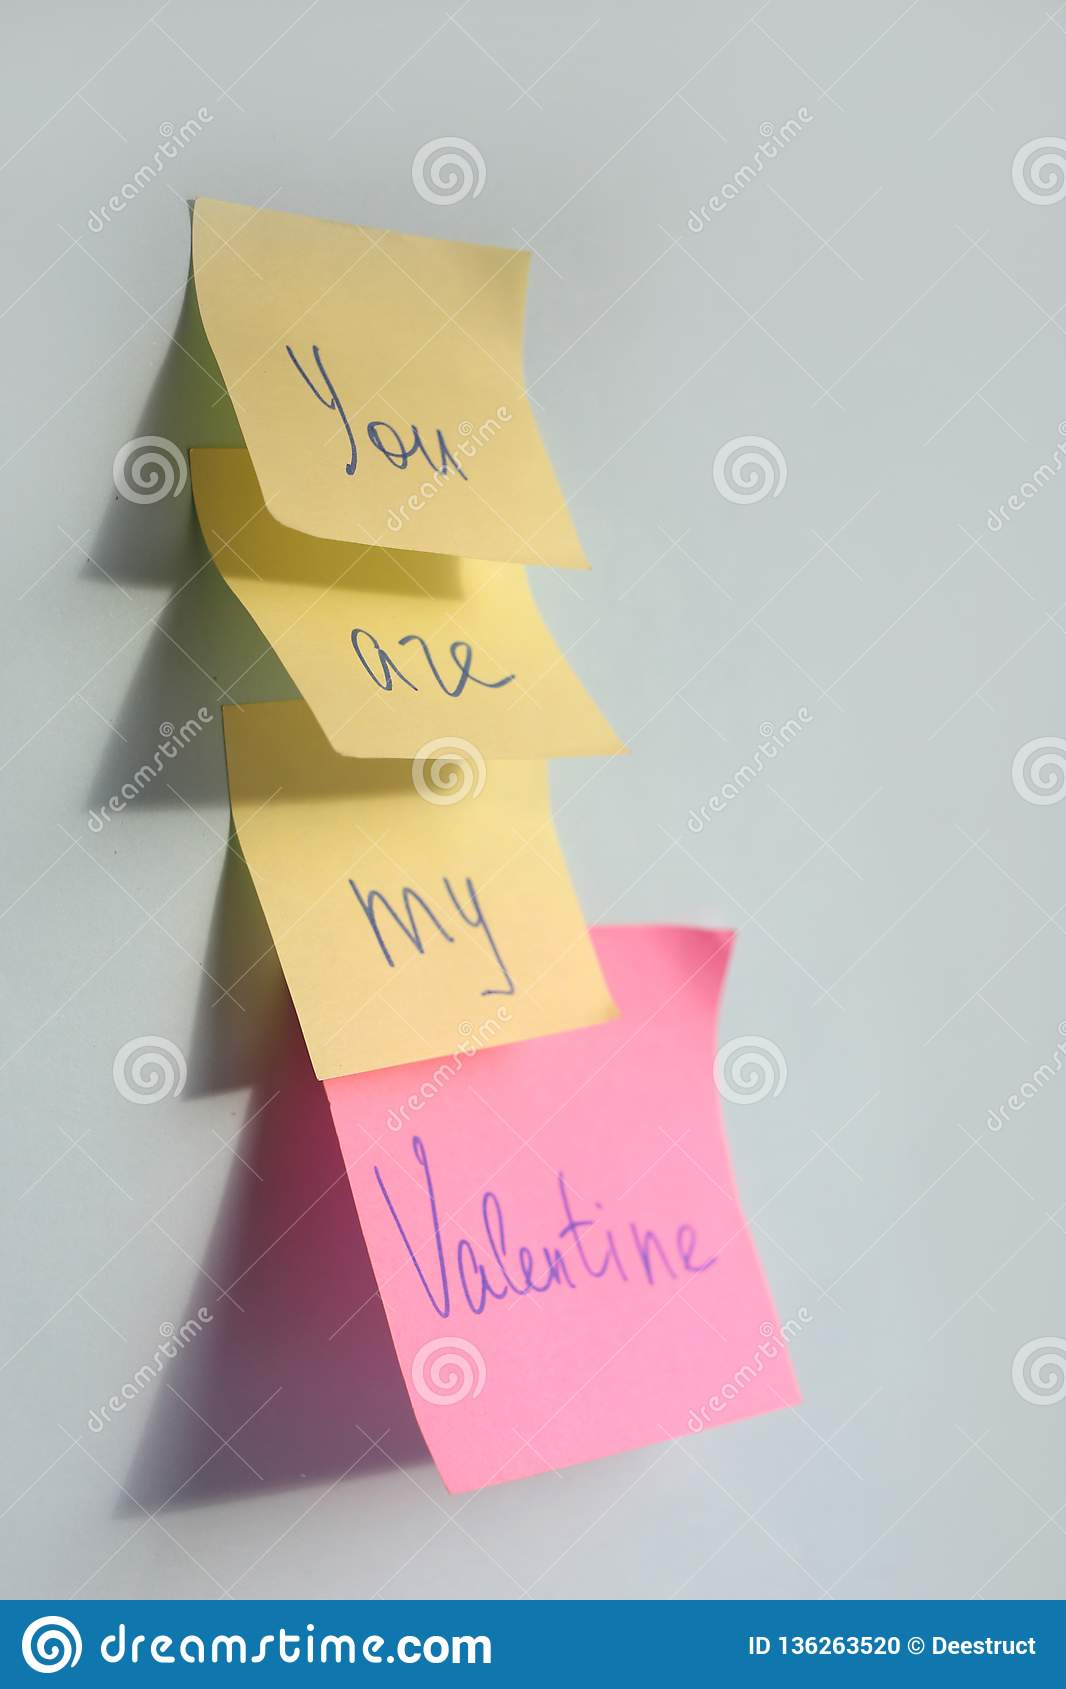 You are my valentine words on stickers on blue background, Valentines day greeting card